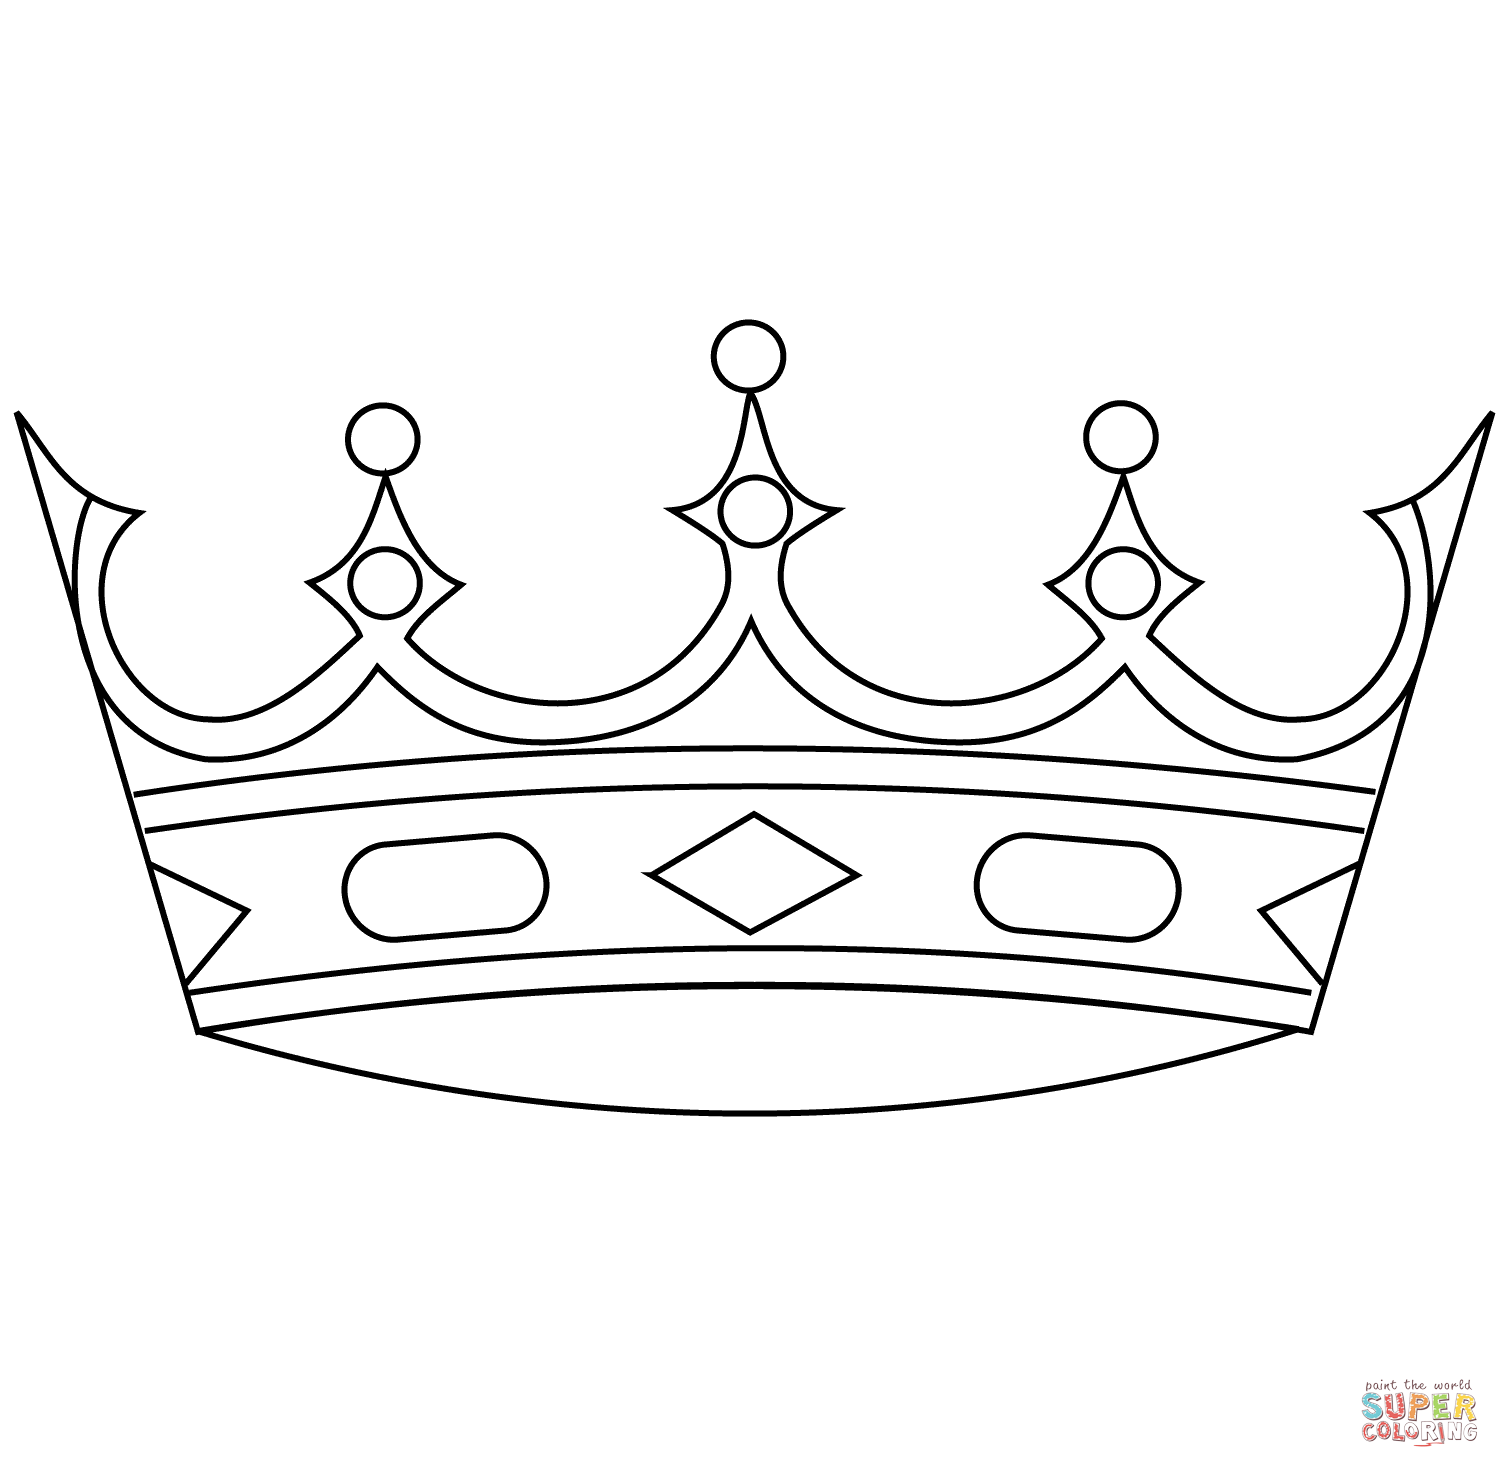 king crown coloring page king crowns coloring pages coloring home crown coloring king page